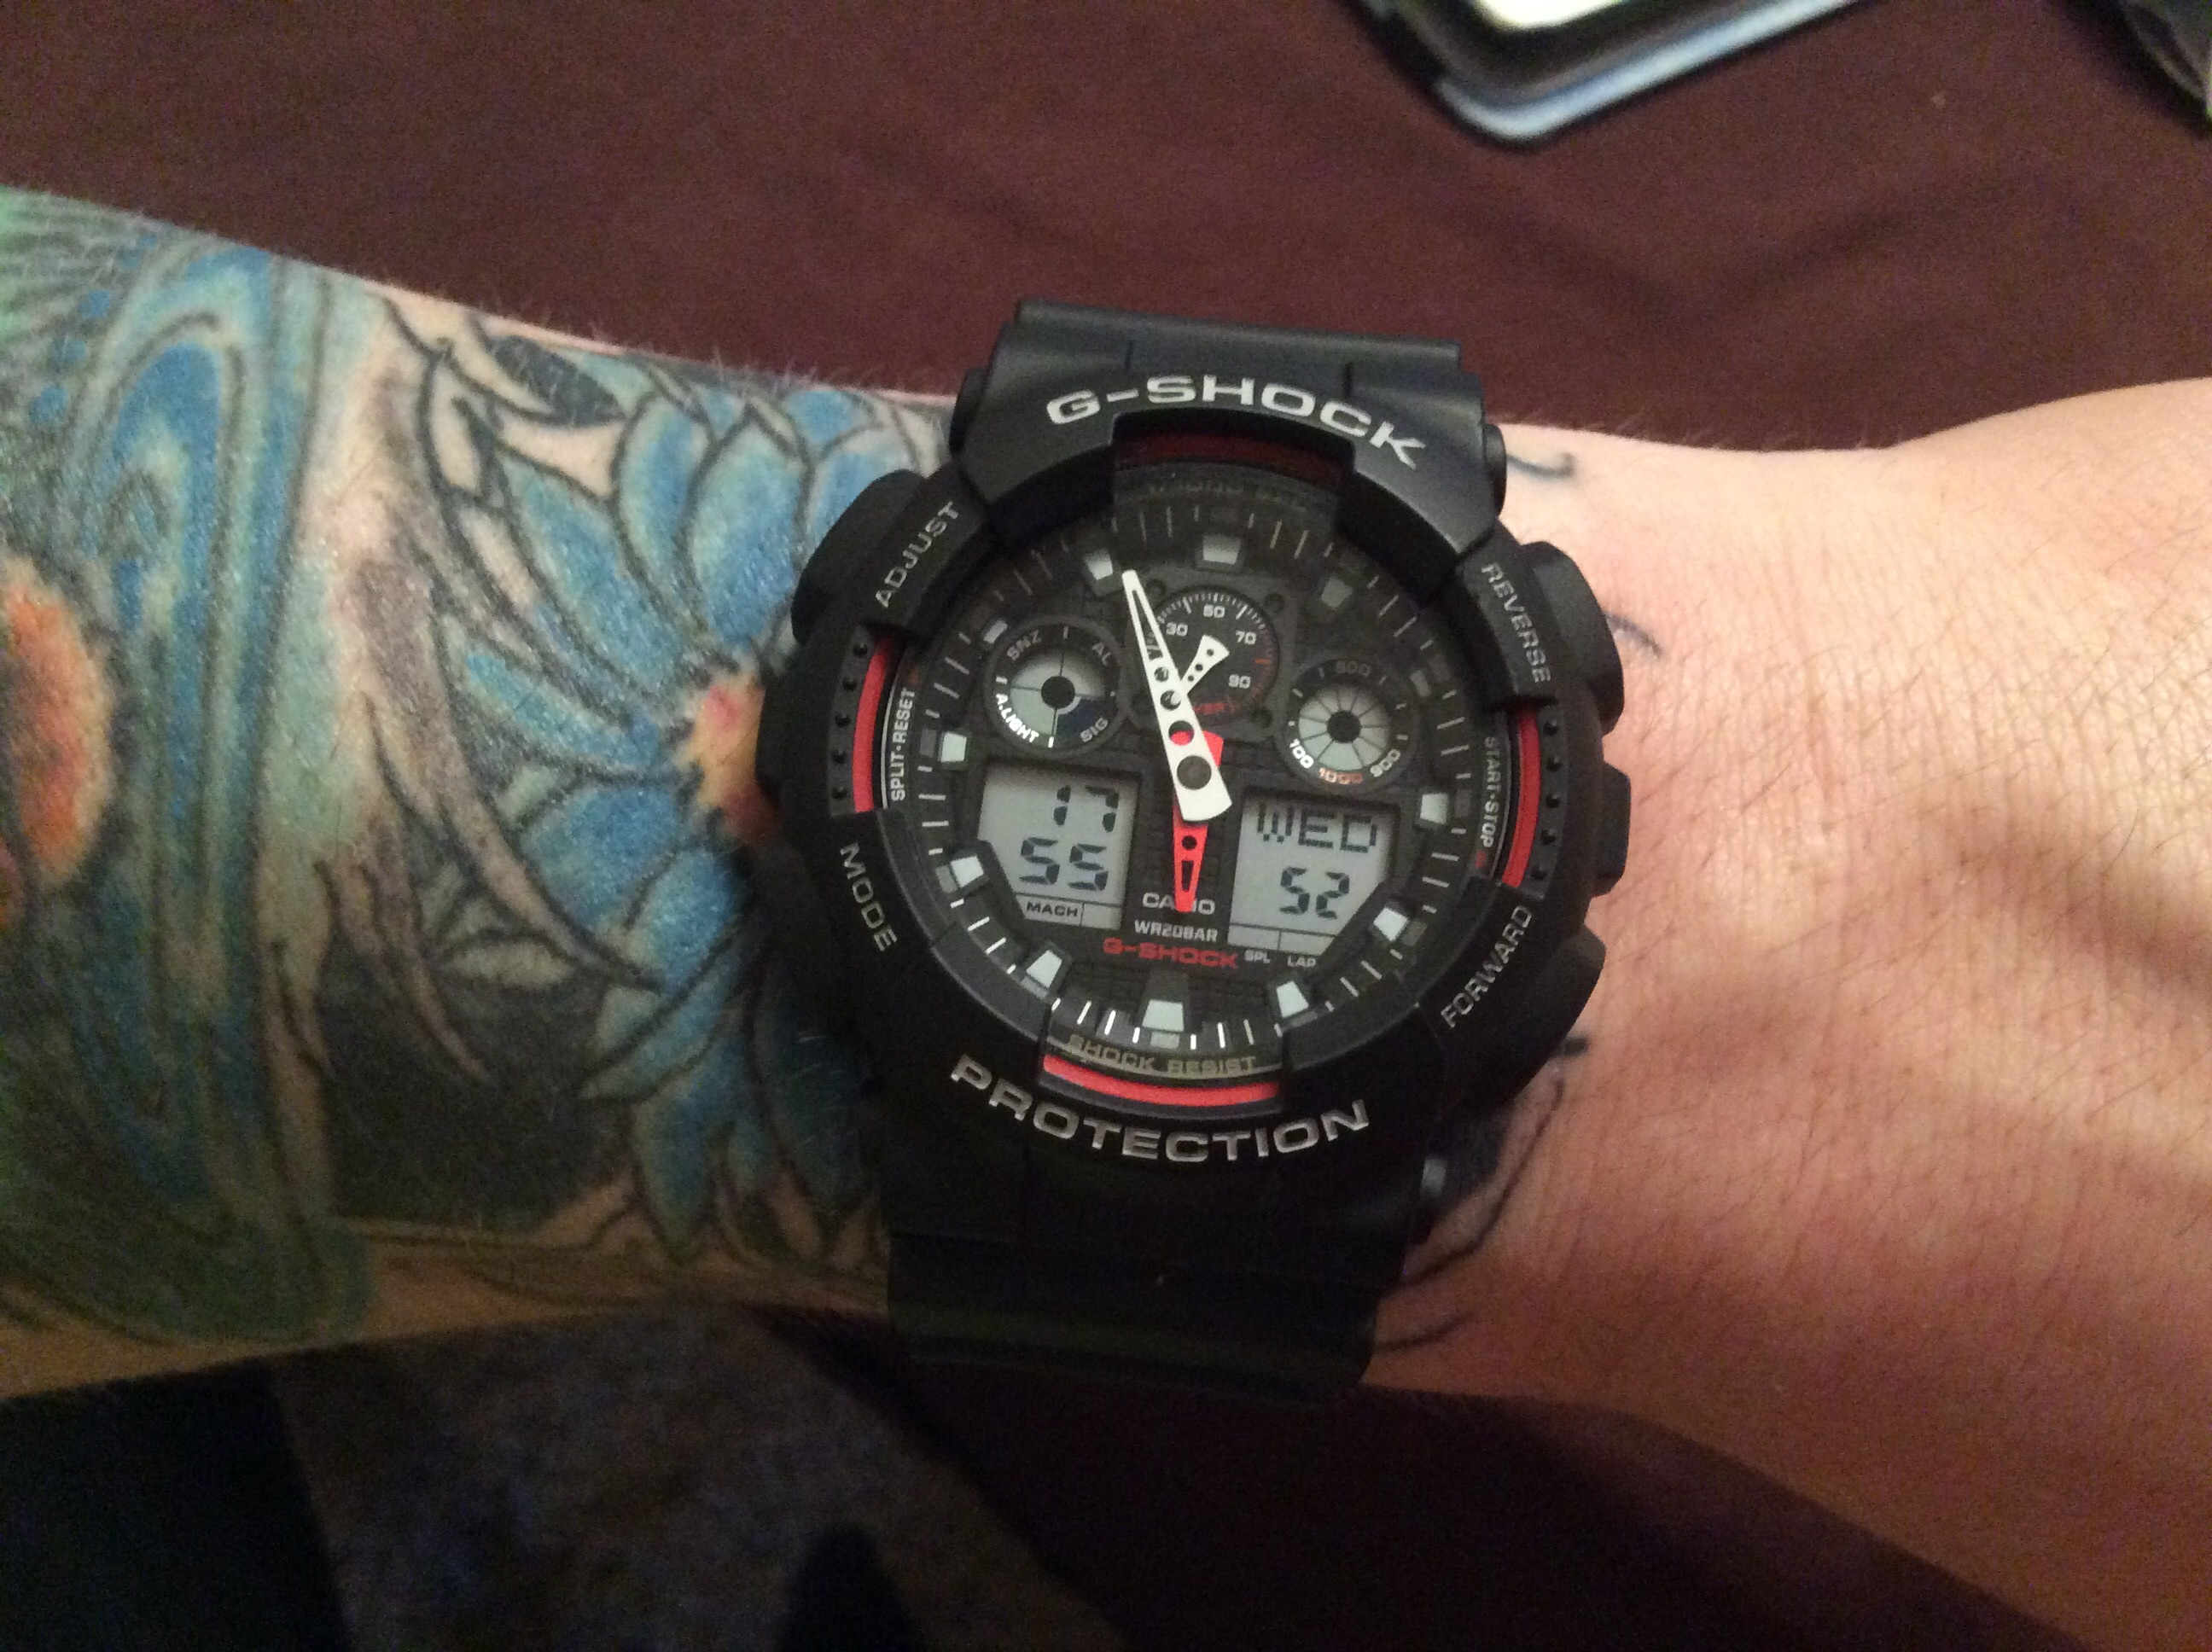 fdcb3685ebfa My wife bought me a G-SHOCK GA-100 for Valentines Day